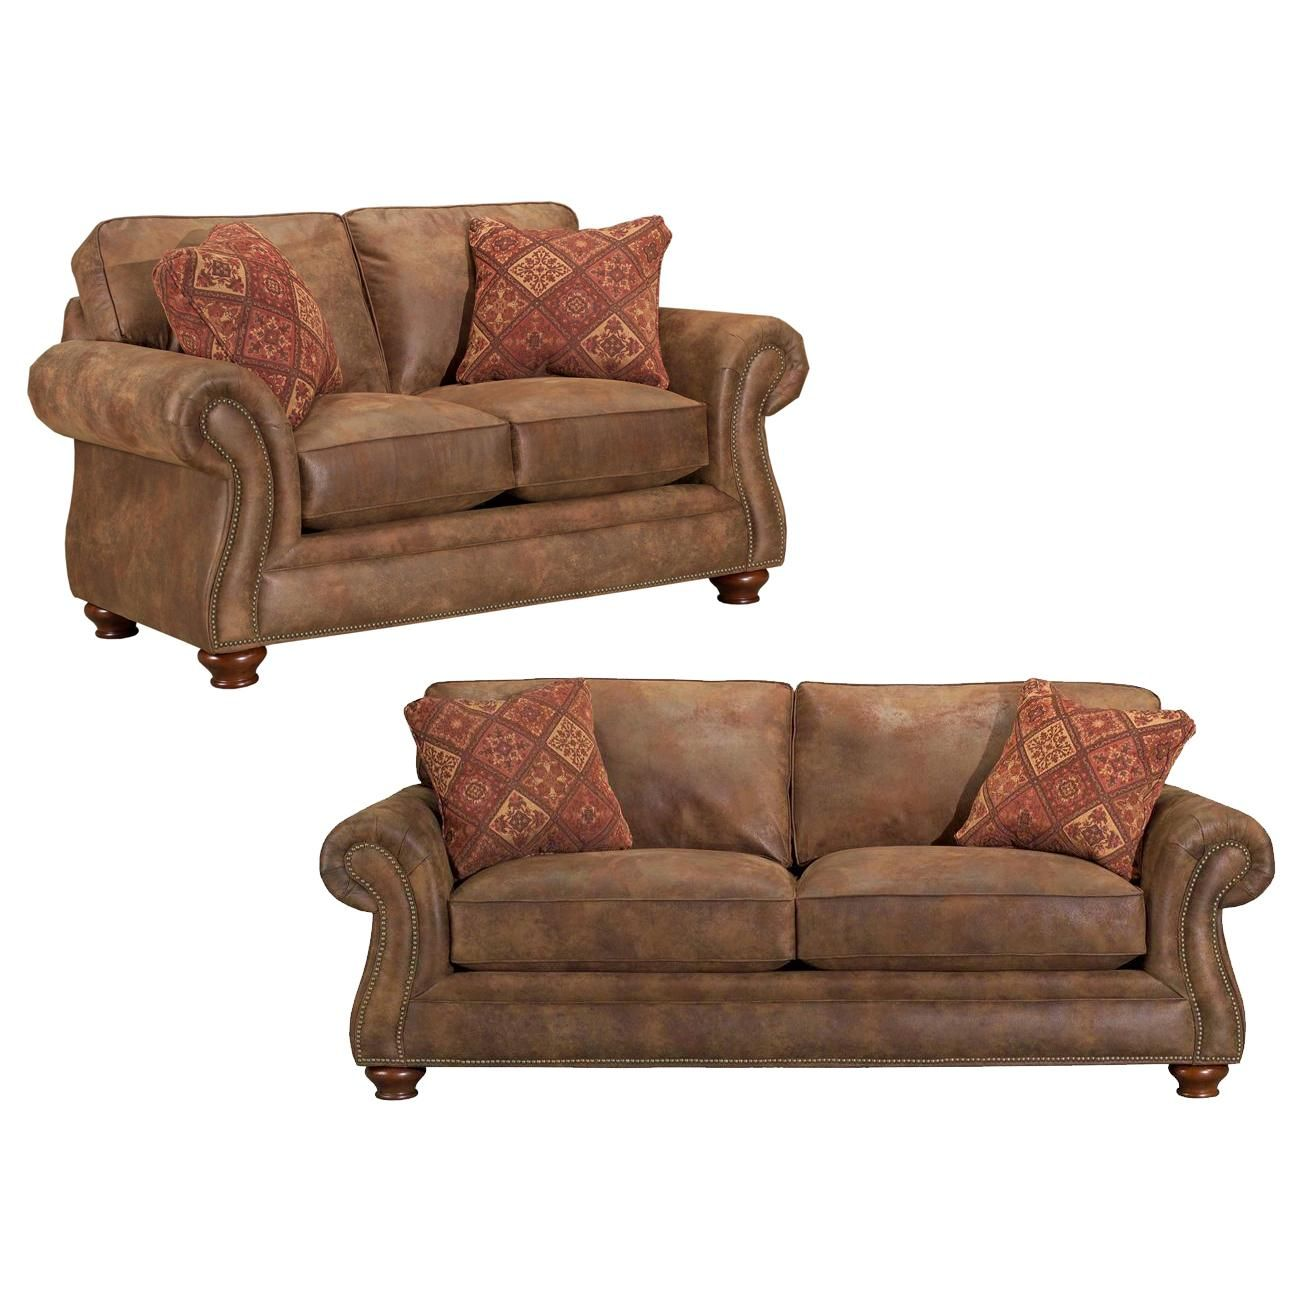 Broyhill Sofa Nebraska Furniture Mart Beige And Loveseat This Is The Couch That I Bought Today Laramie 2 Piece